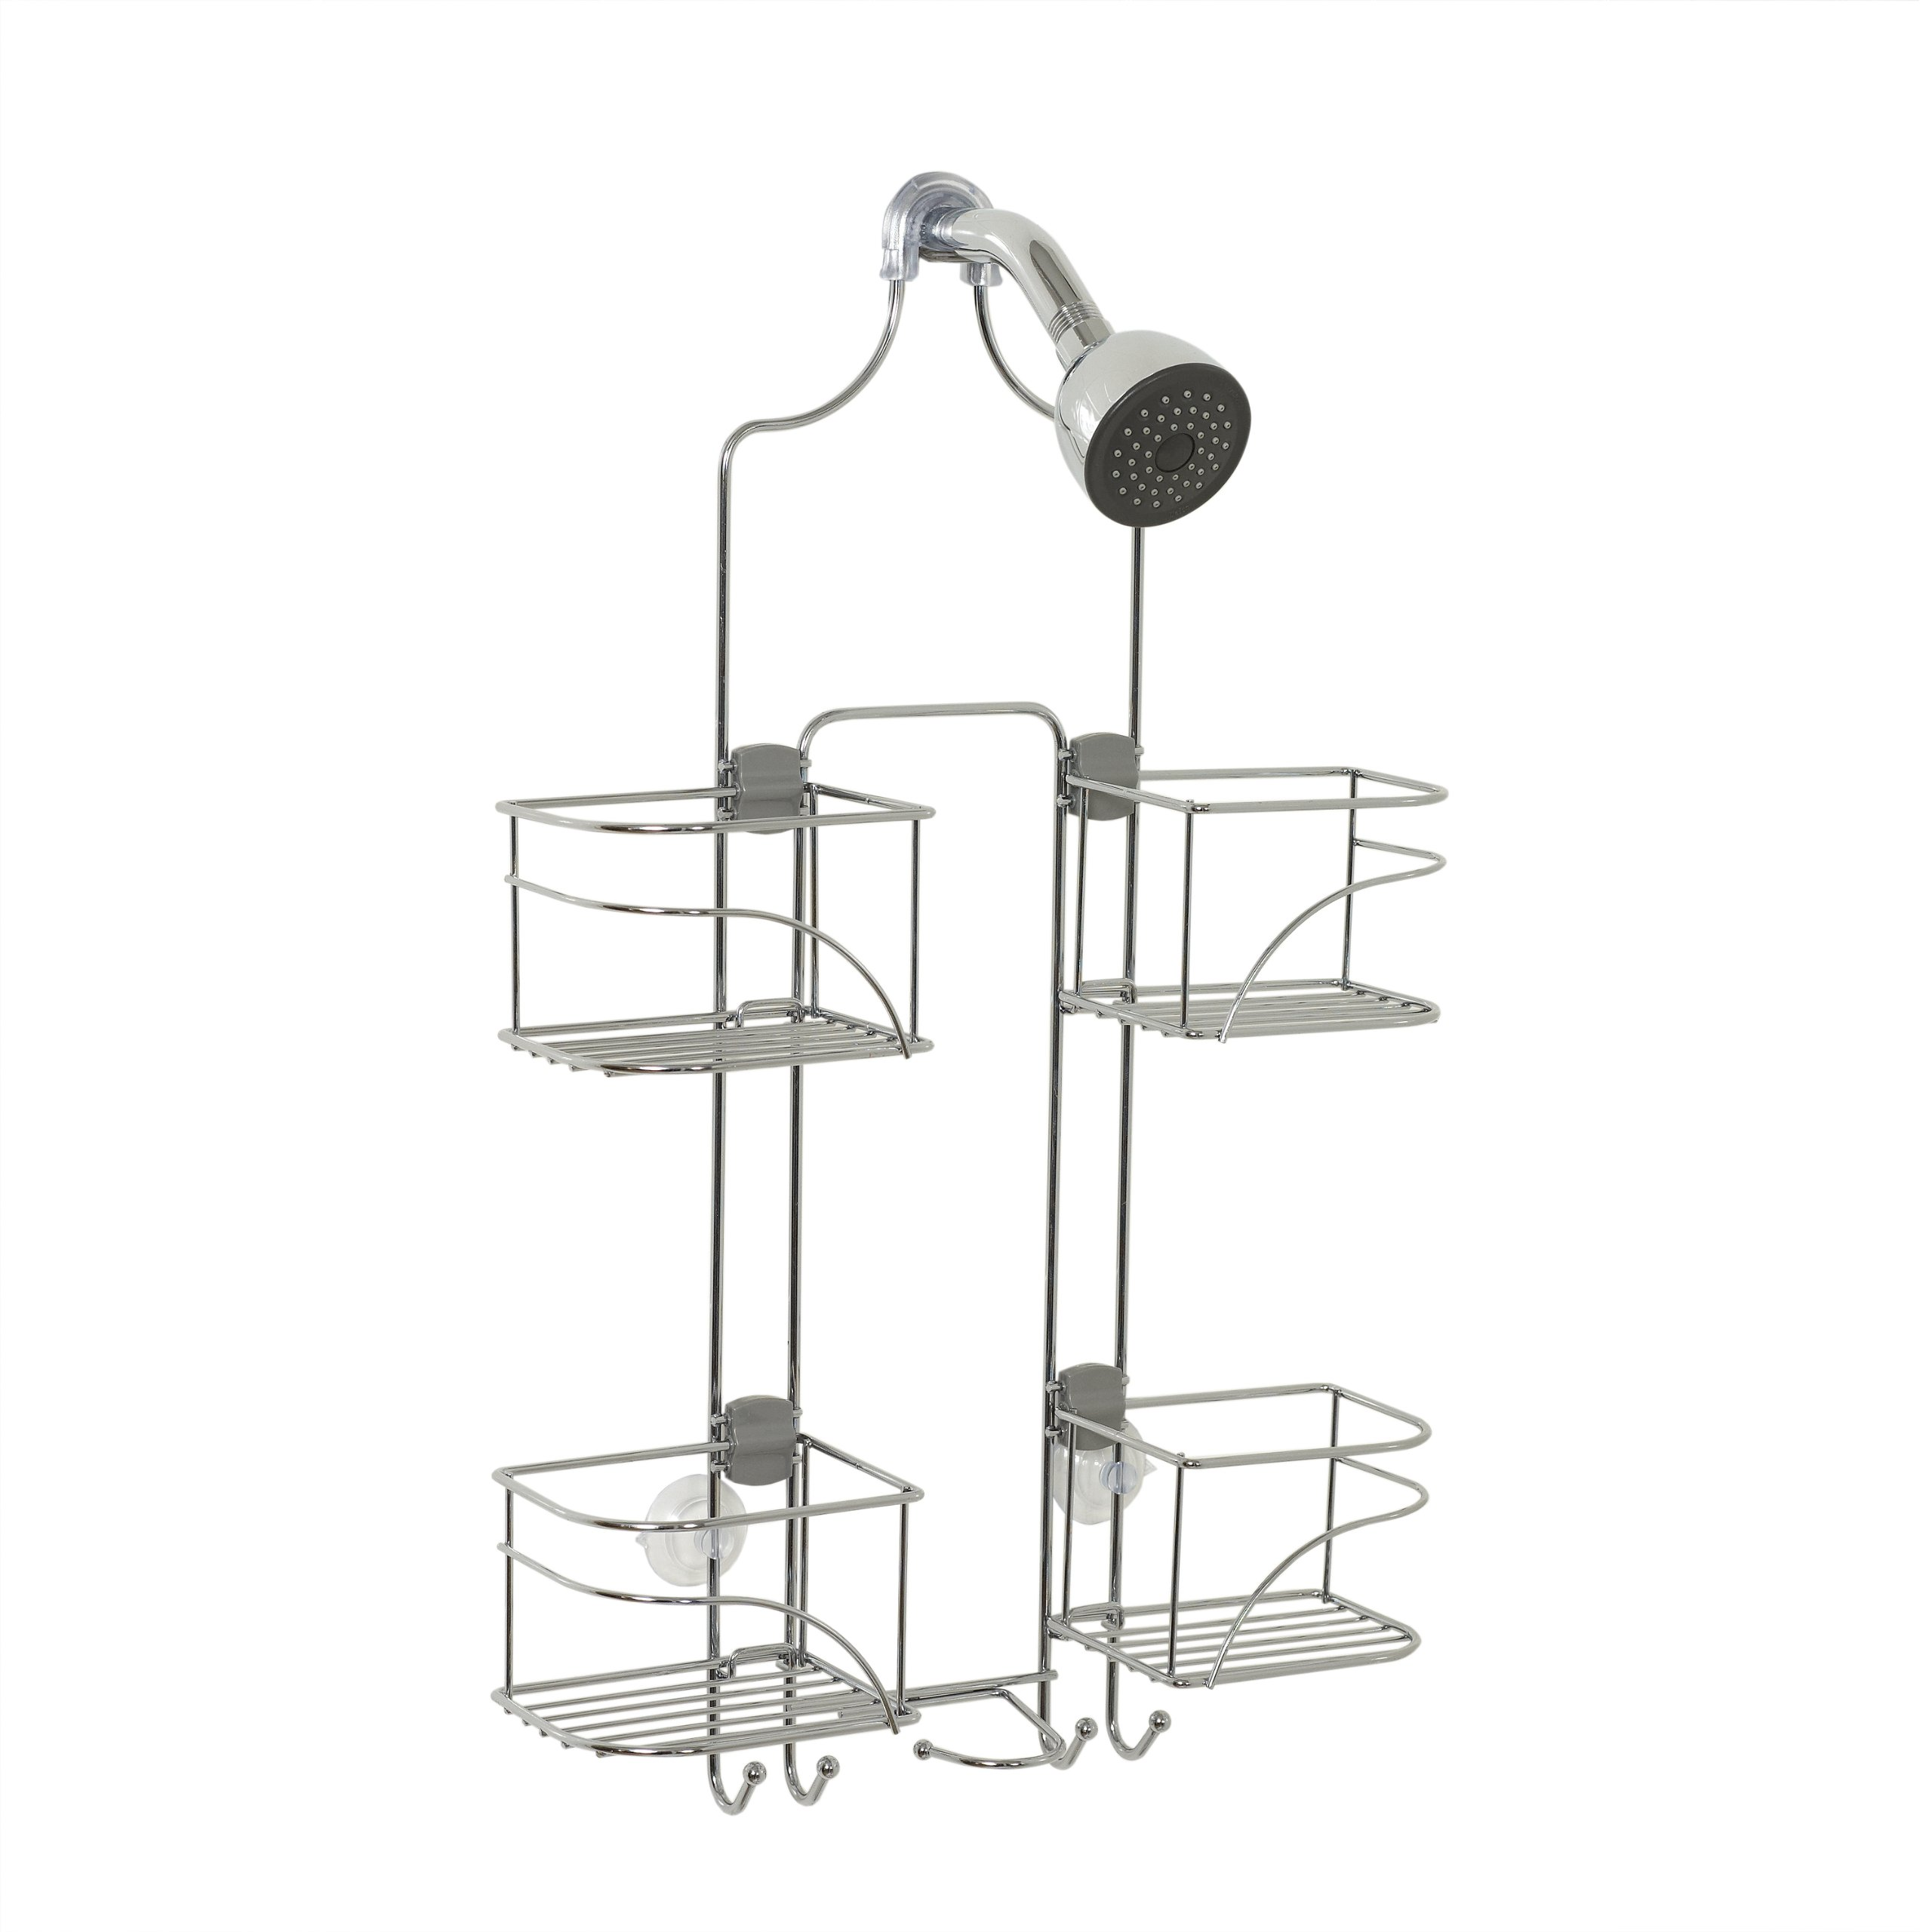 Zenna Home 7446SS, Expandable Over-the-Showerhead Caddy, Chrome by Zenna Home